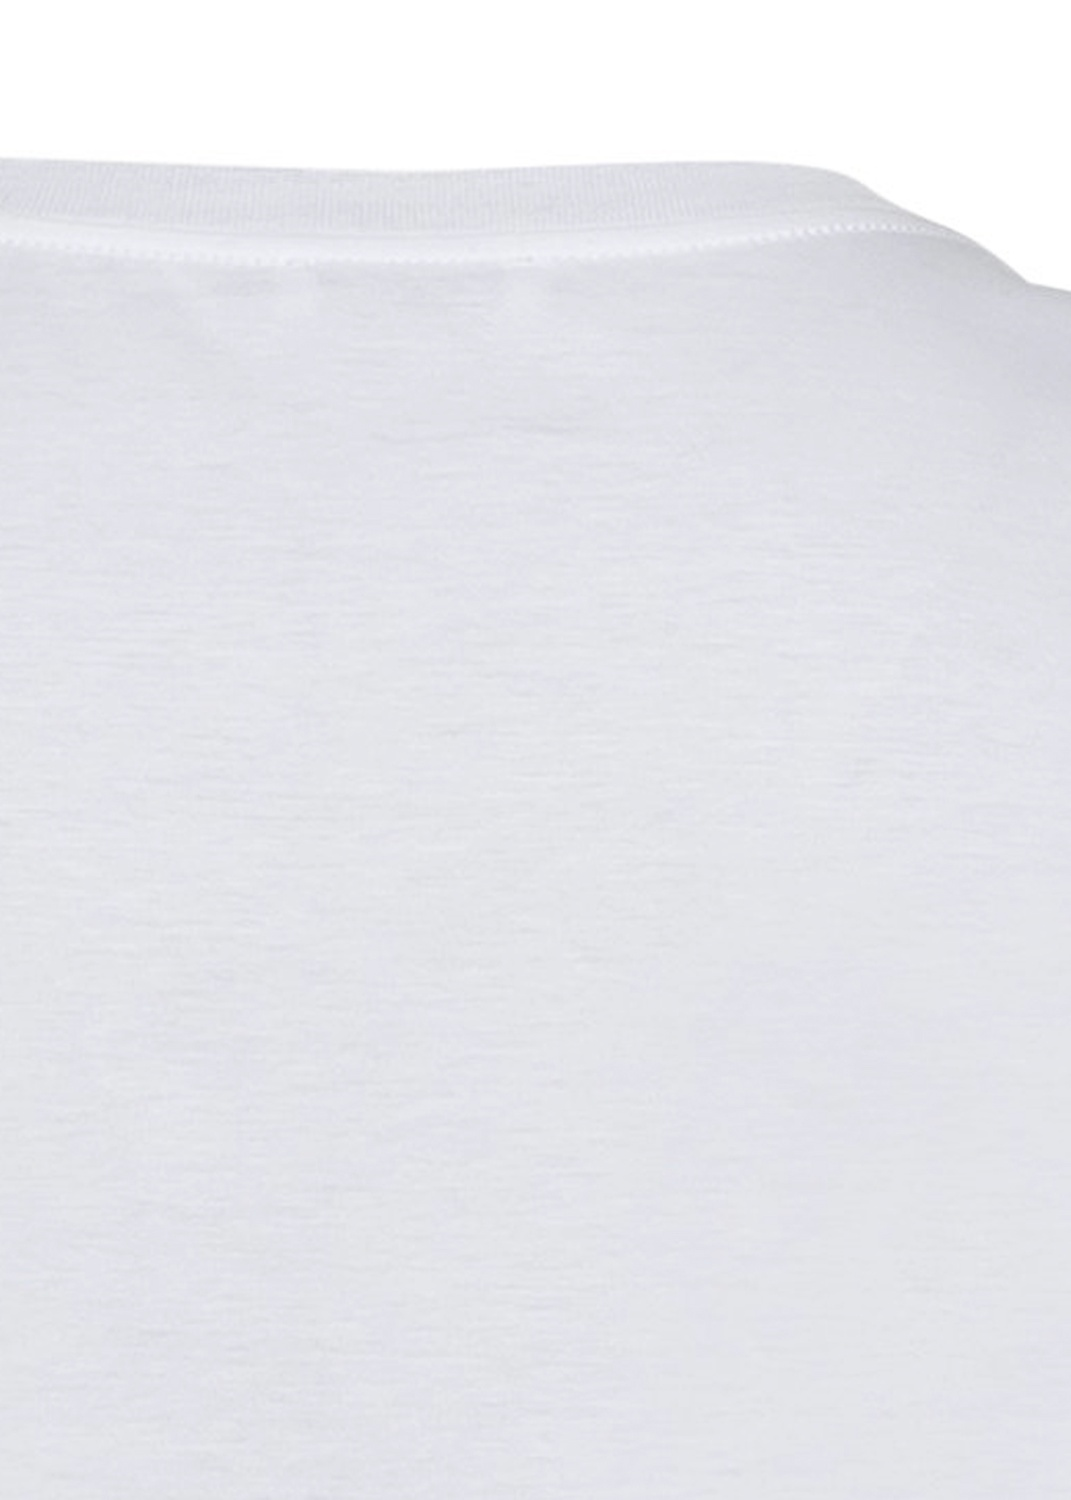 White Tee image number 3